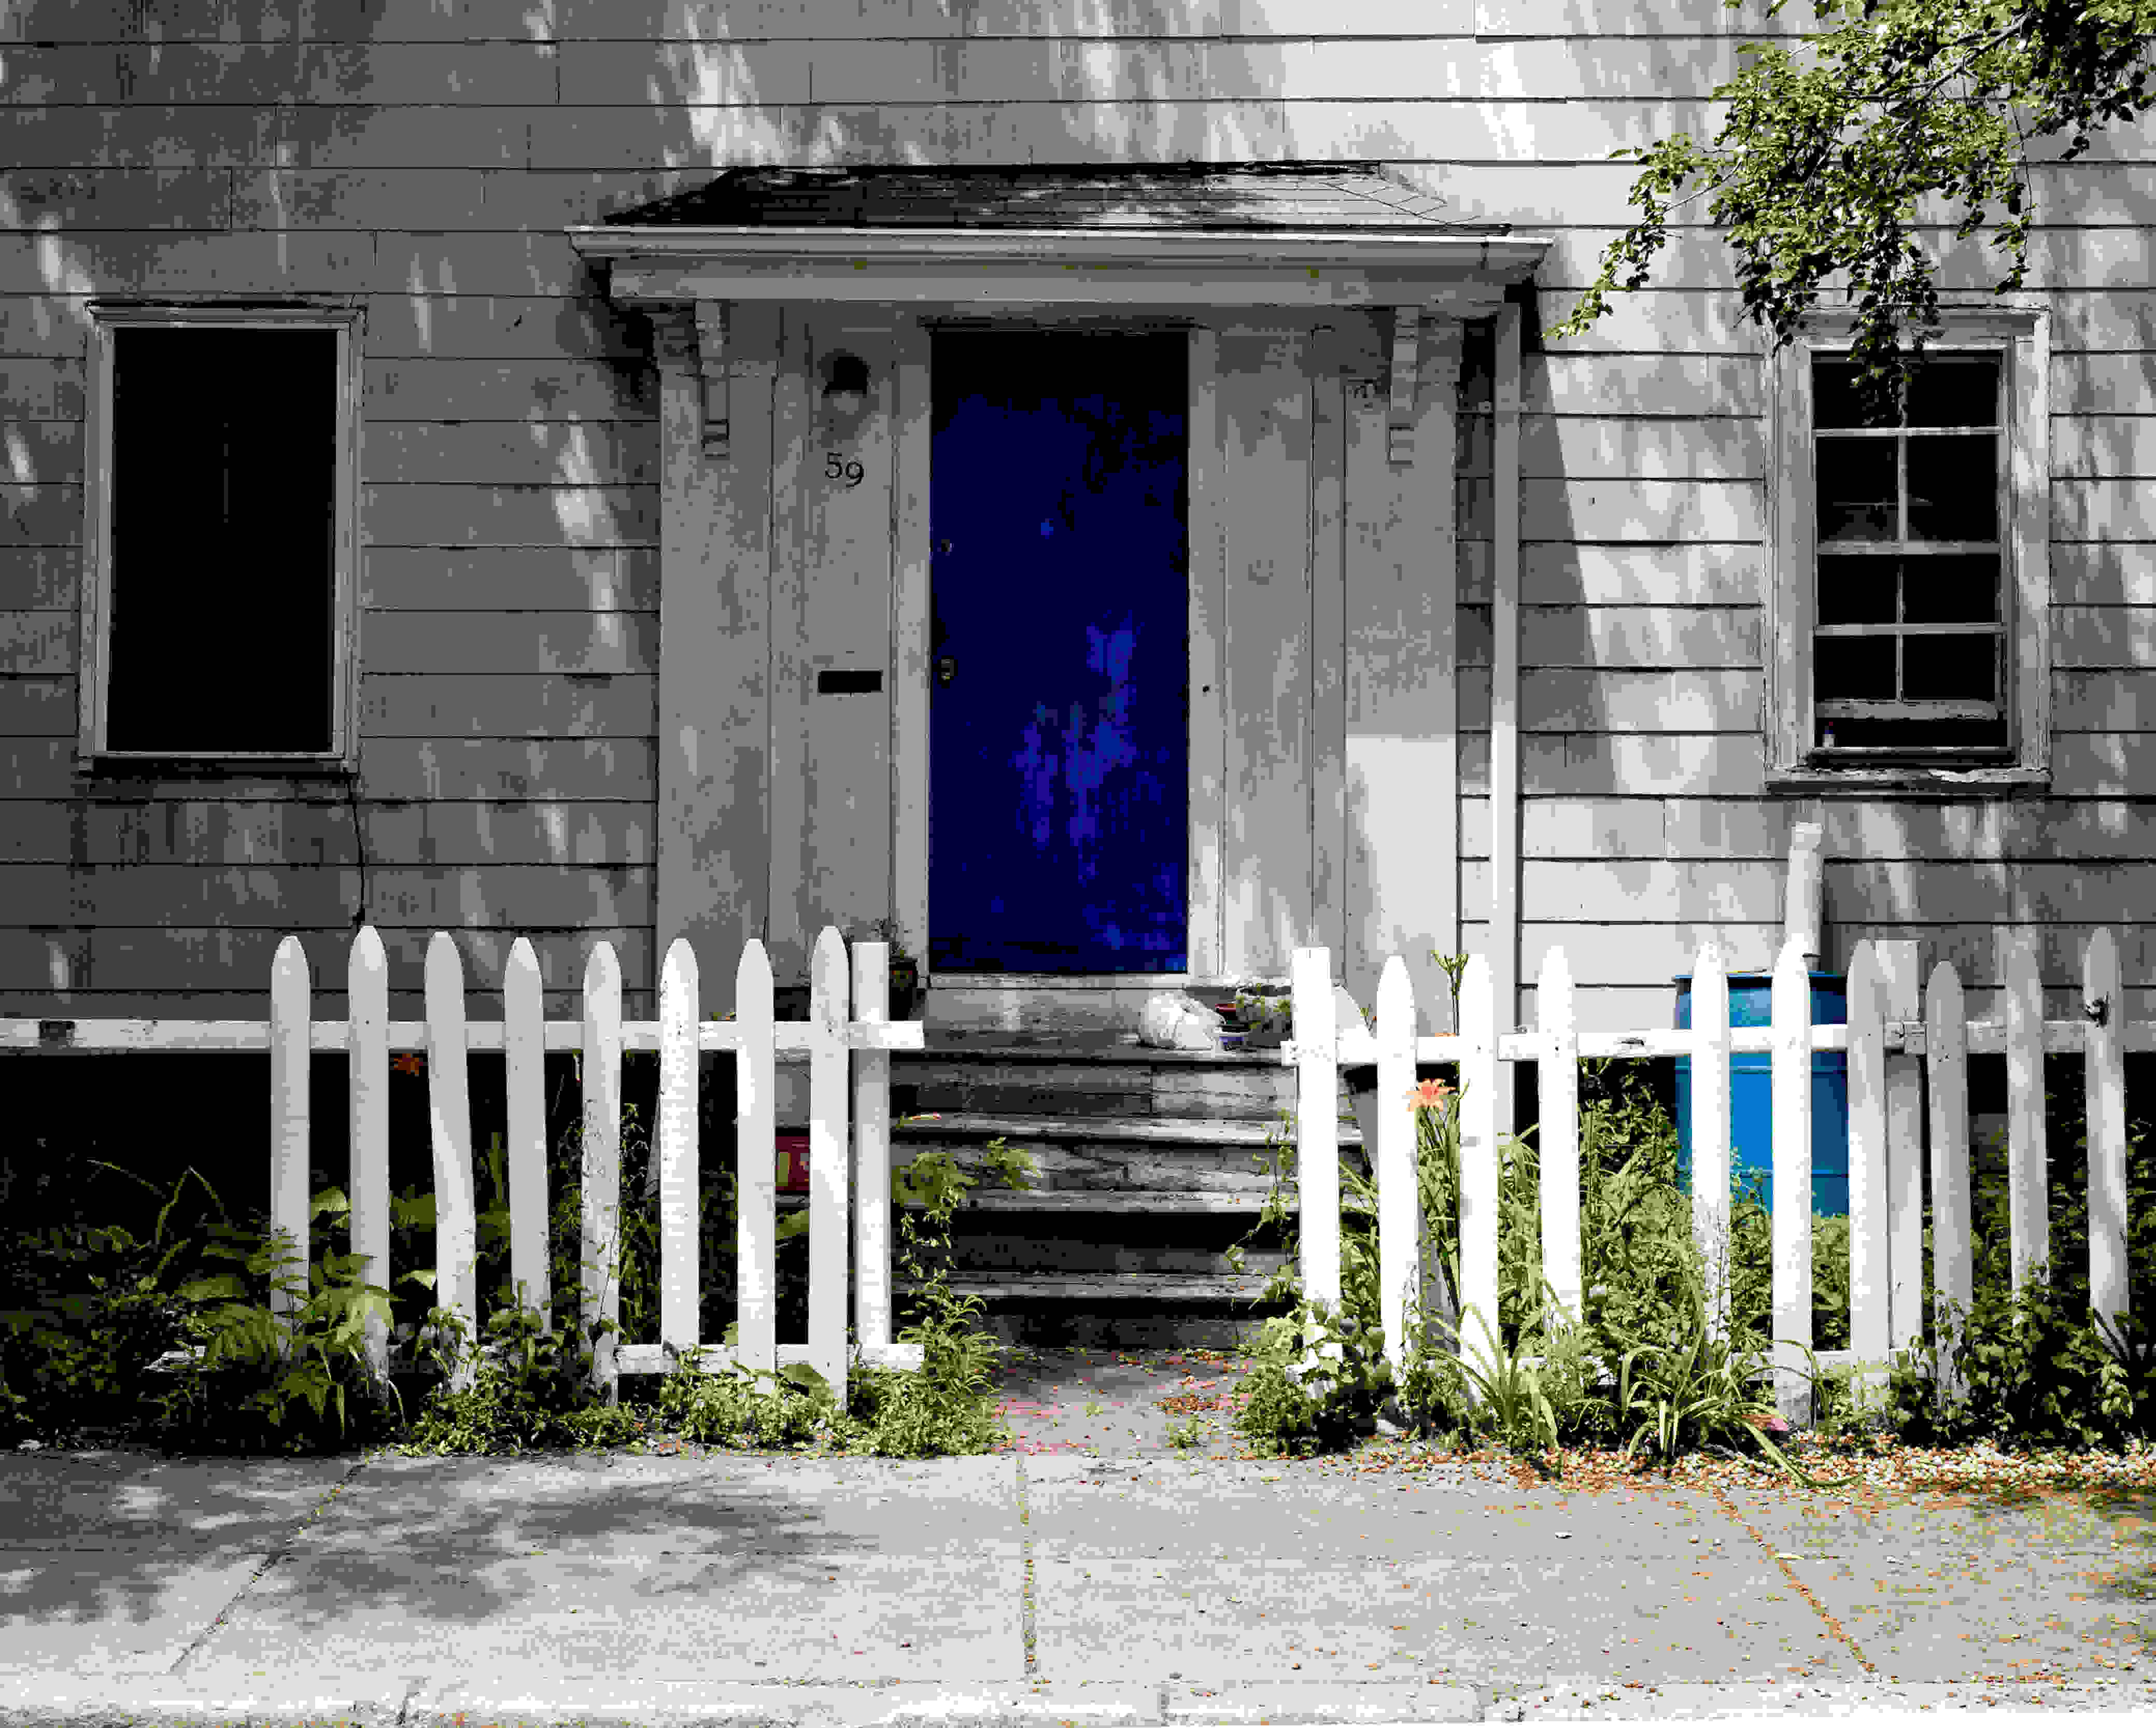 A photo of a blue door taken by the Leica Q (Type 116).